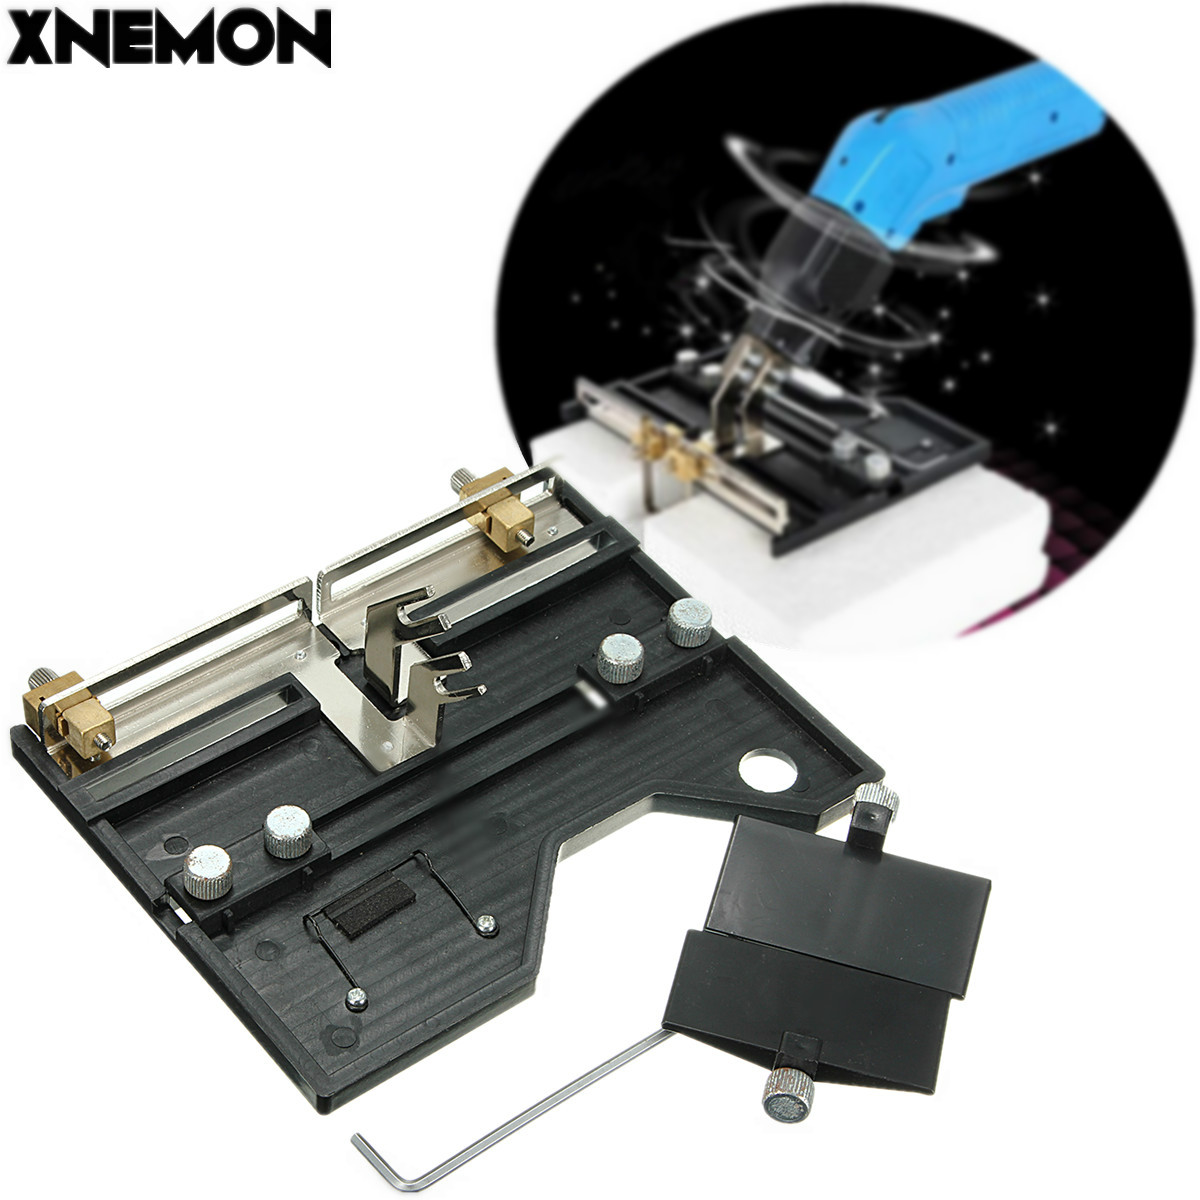 XNEMON Large Groove Electric Hot Knife Foam Cutter Heat Wire Grooving Cutting Tool 10-160MM, Adjustable Size Foam Cutting Board 2mm wide blade cutter rod 12mm outer diameter cutting arbor external grooving lathe tool holder width grooving parting cutting